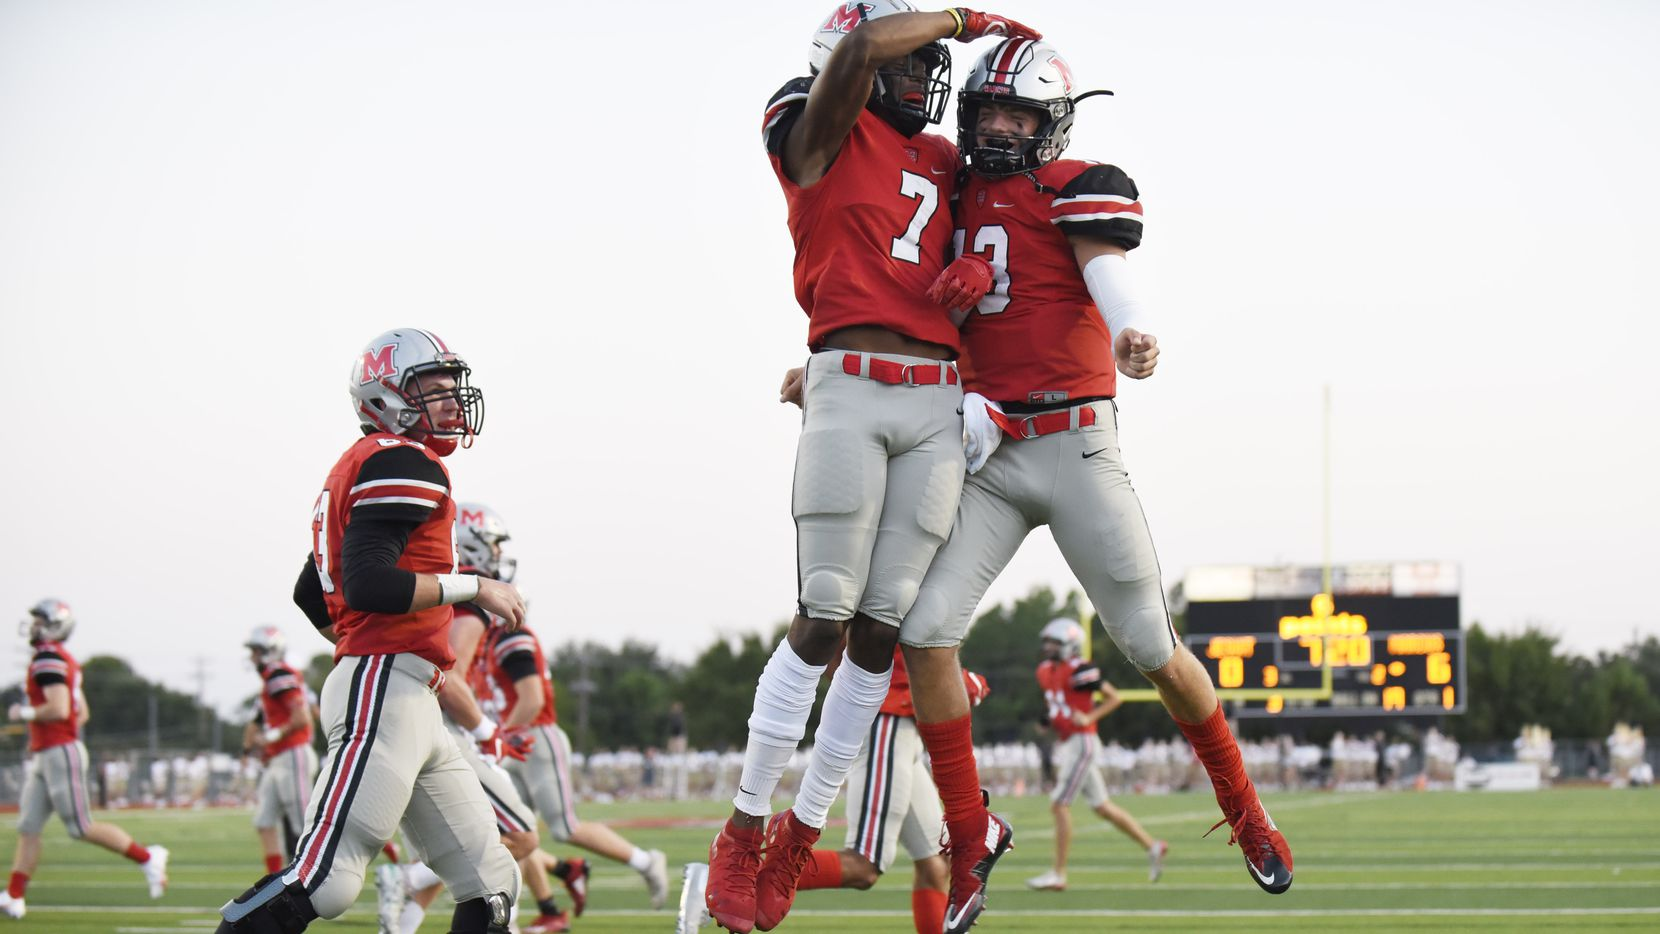 Flower Mound Marcus senior wide receiver J. Michael Sturdivant (7) celebrates with senior quarterback Garrett Nussmeier (13) after the two players connected for the first touchdown of the game versus Jesuit high school, on Friday night, Sept. 25, 2020 at Marauder Stadium in Flower Mound.